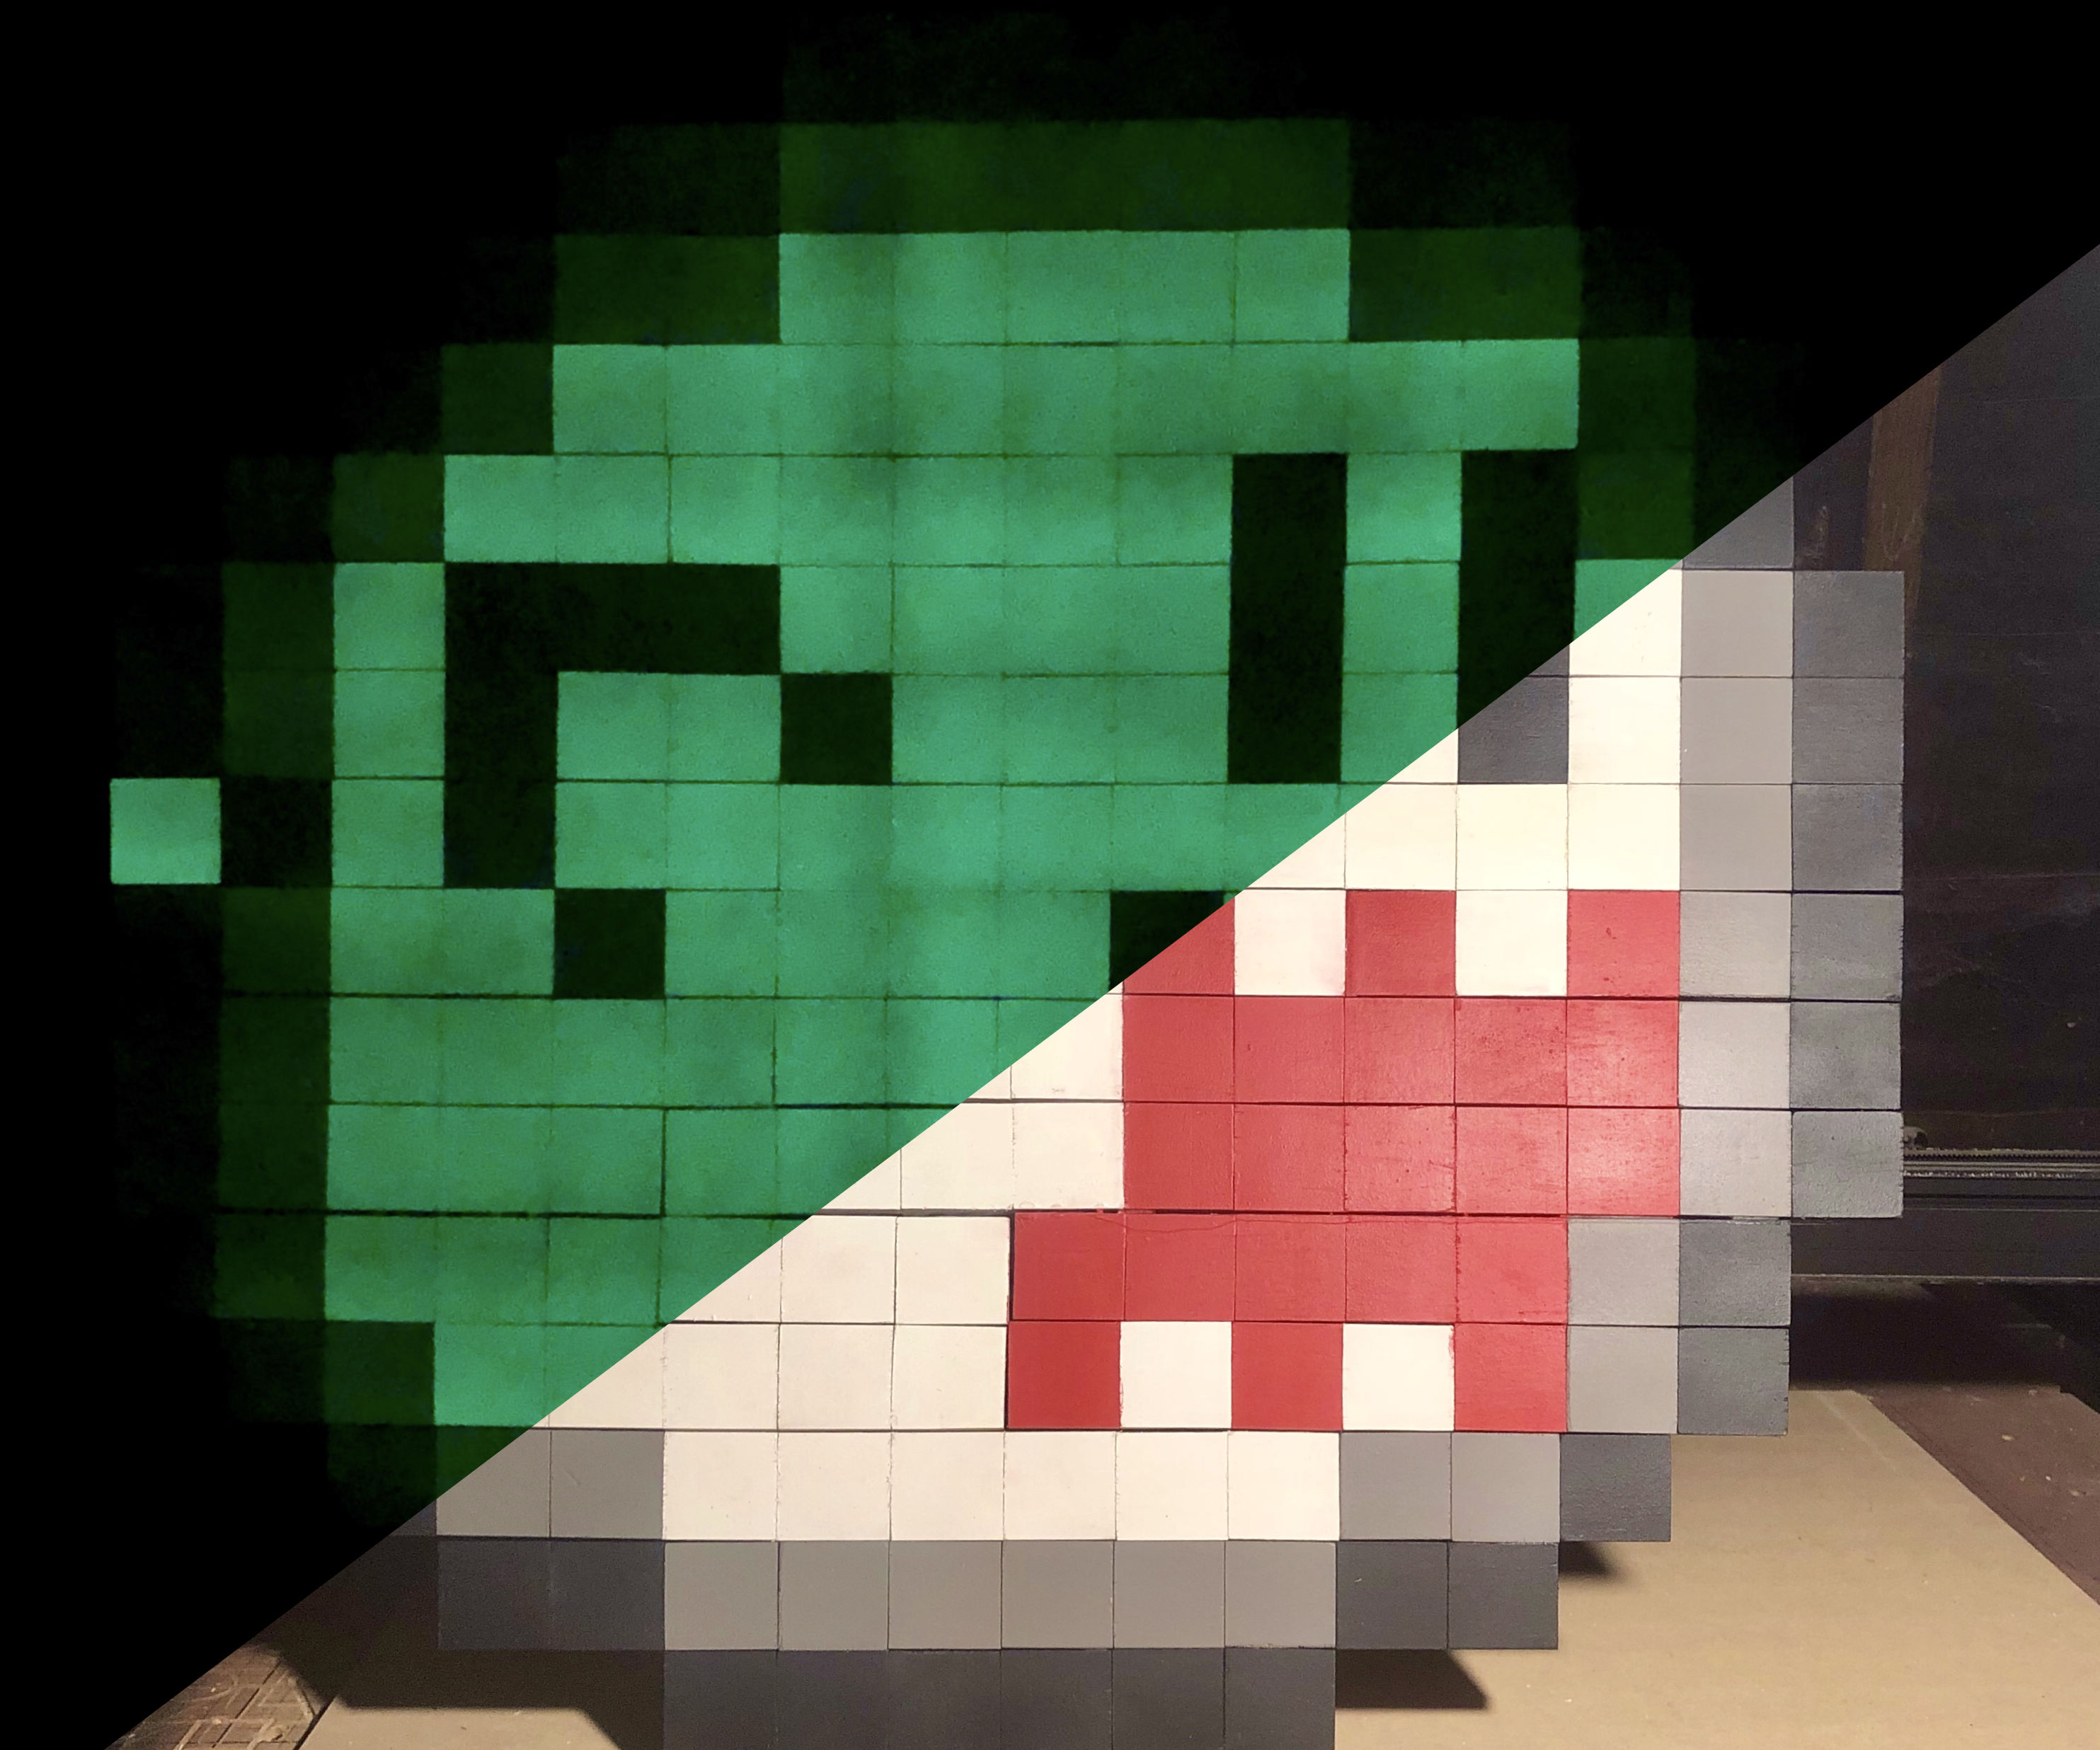 8-Bit Glow in the Dark Pixel Art